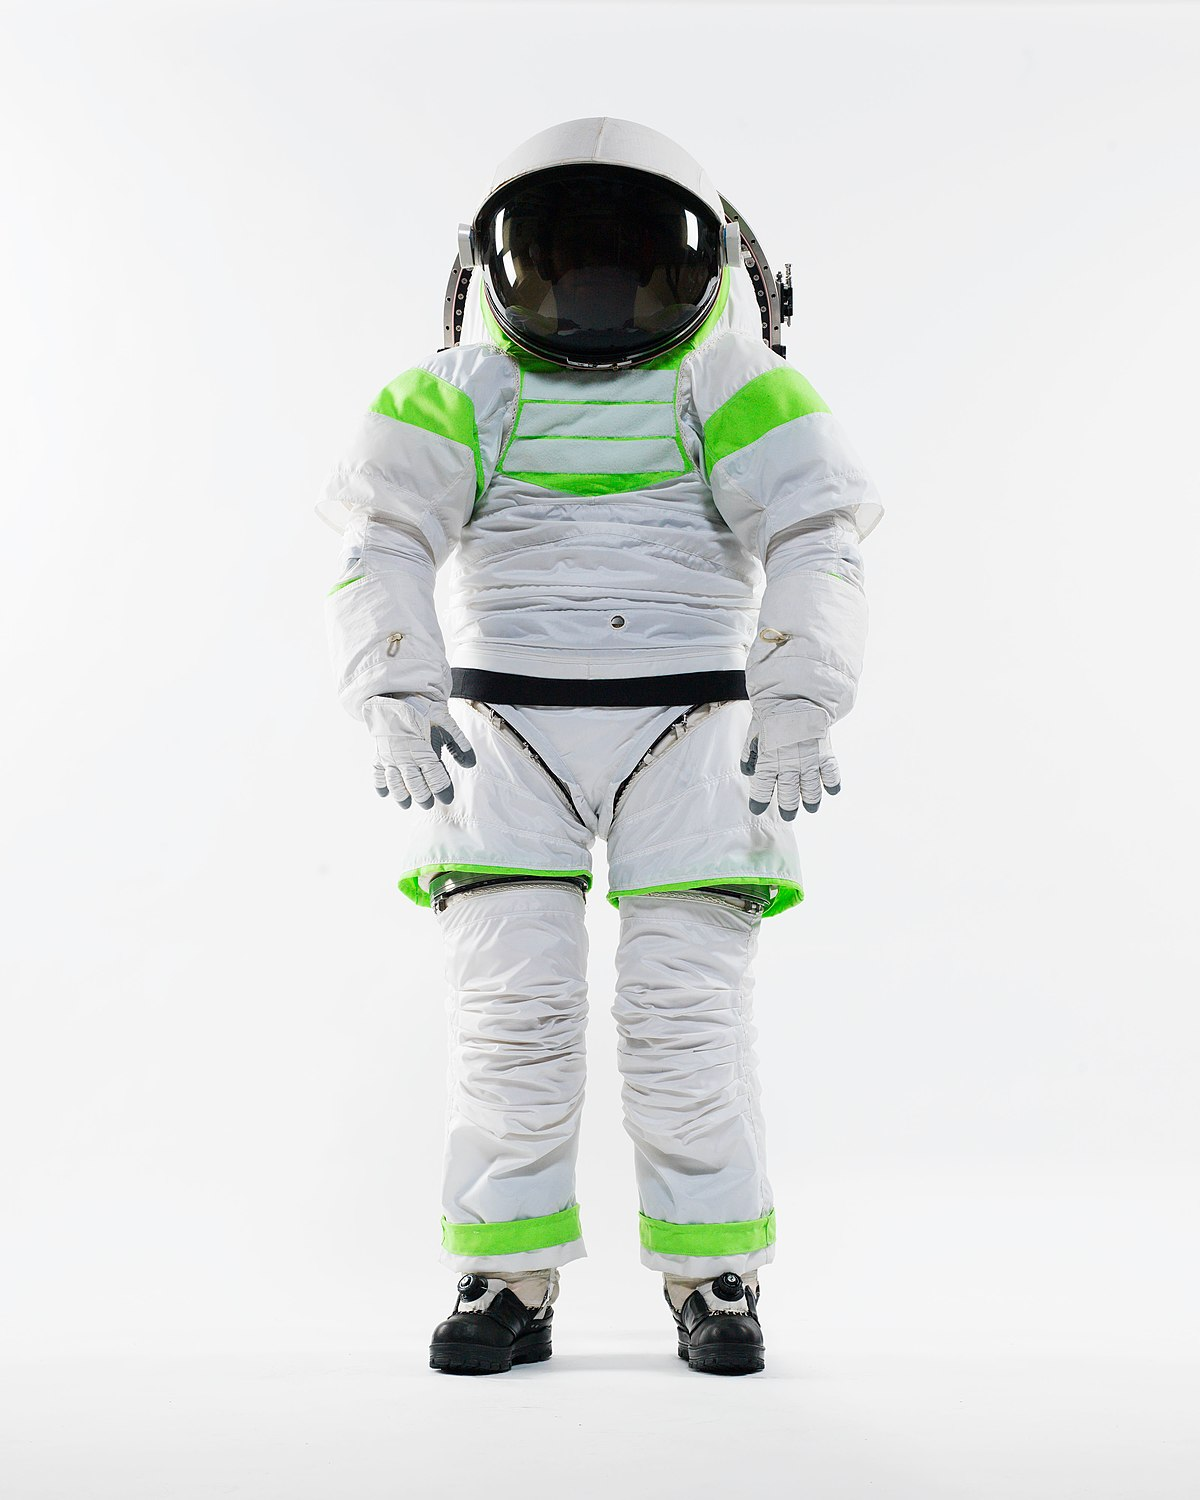 Z Series Space Suits